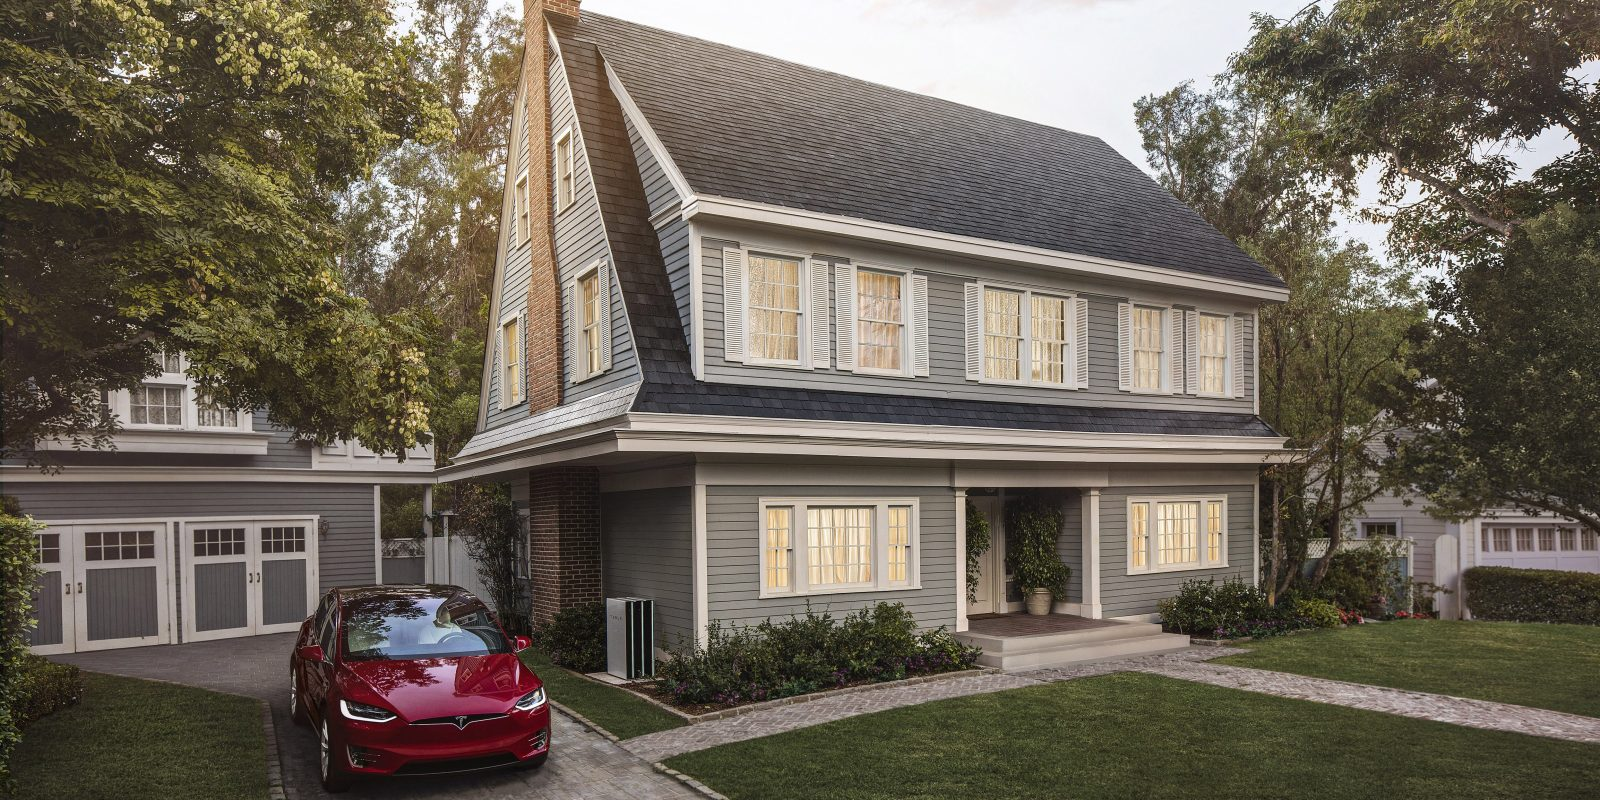 Tesla's solar roof tiles are already sold out 'well into 2018'